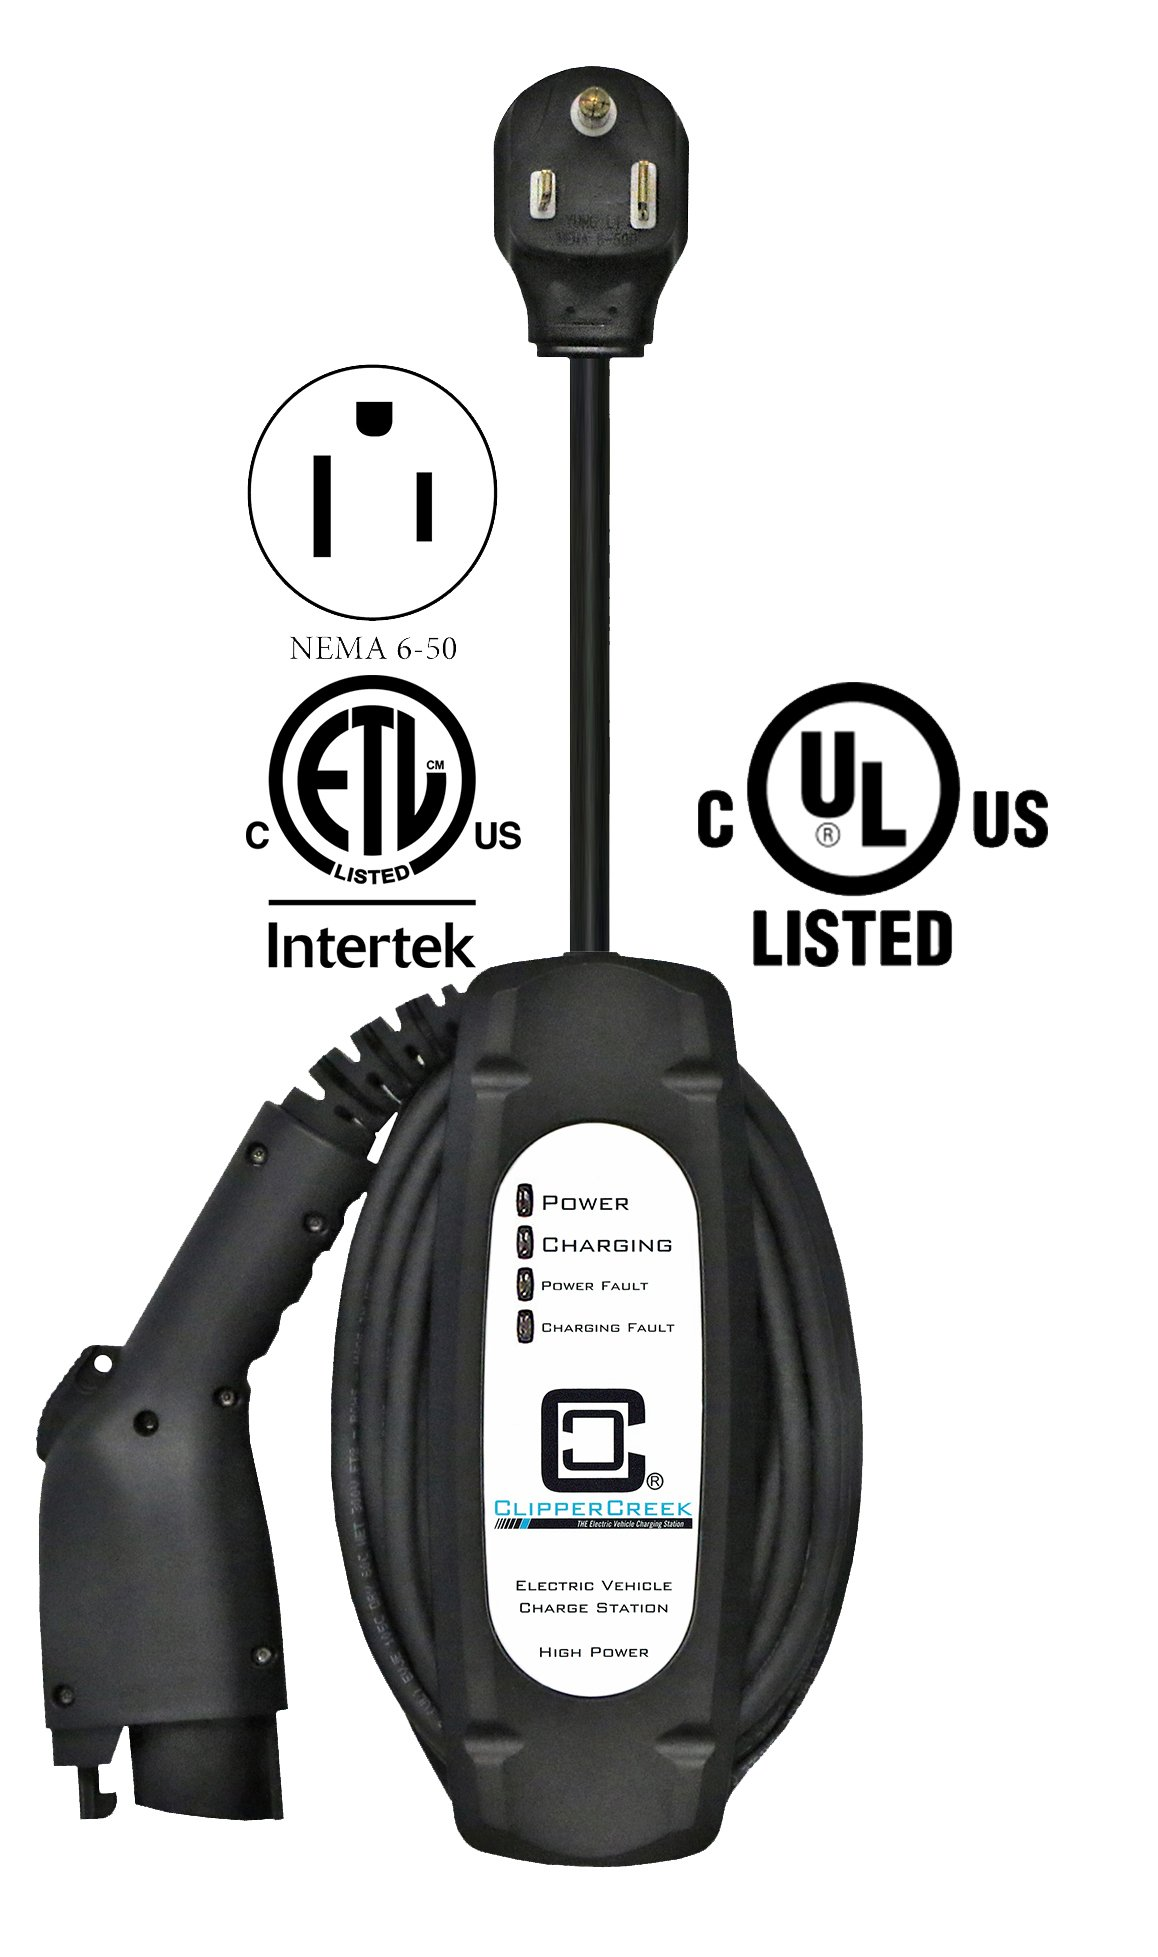 ClipperCreek LCS-20P, Plug-in 16 Amp EVSE, with a NEMA 6-50 Plug, with 25 ft Cable, Safety Certified, Made in America by ClipperCreek